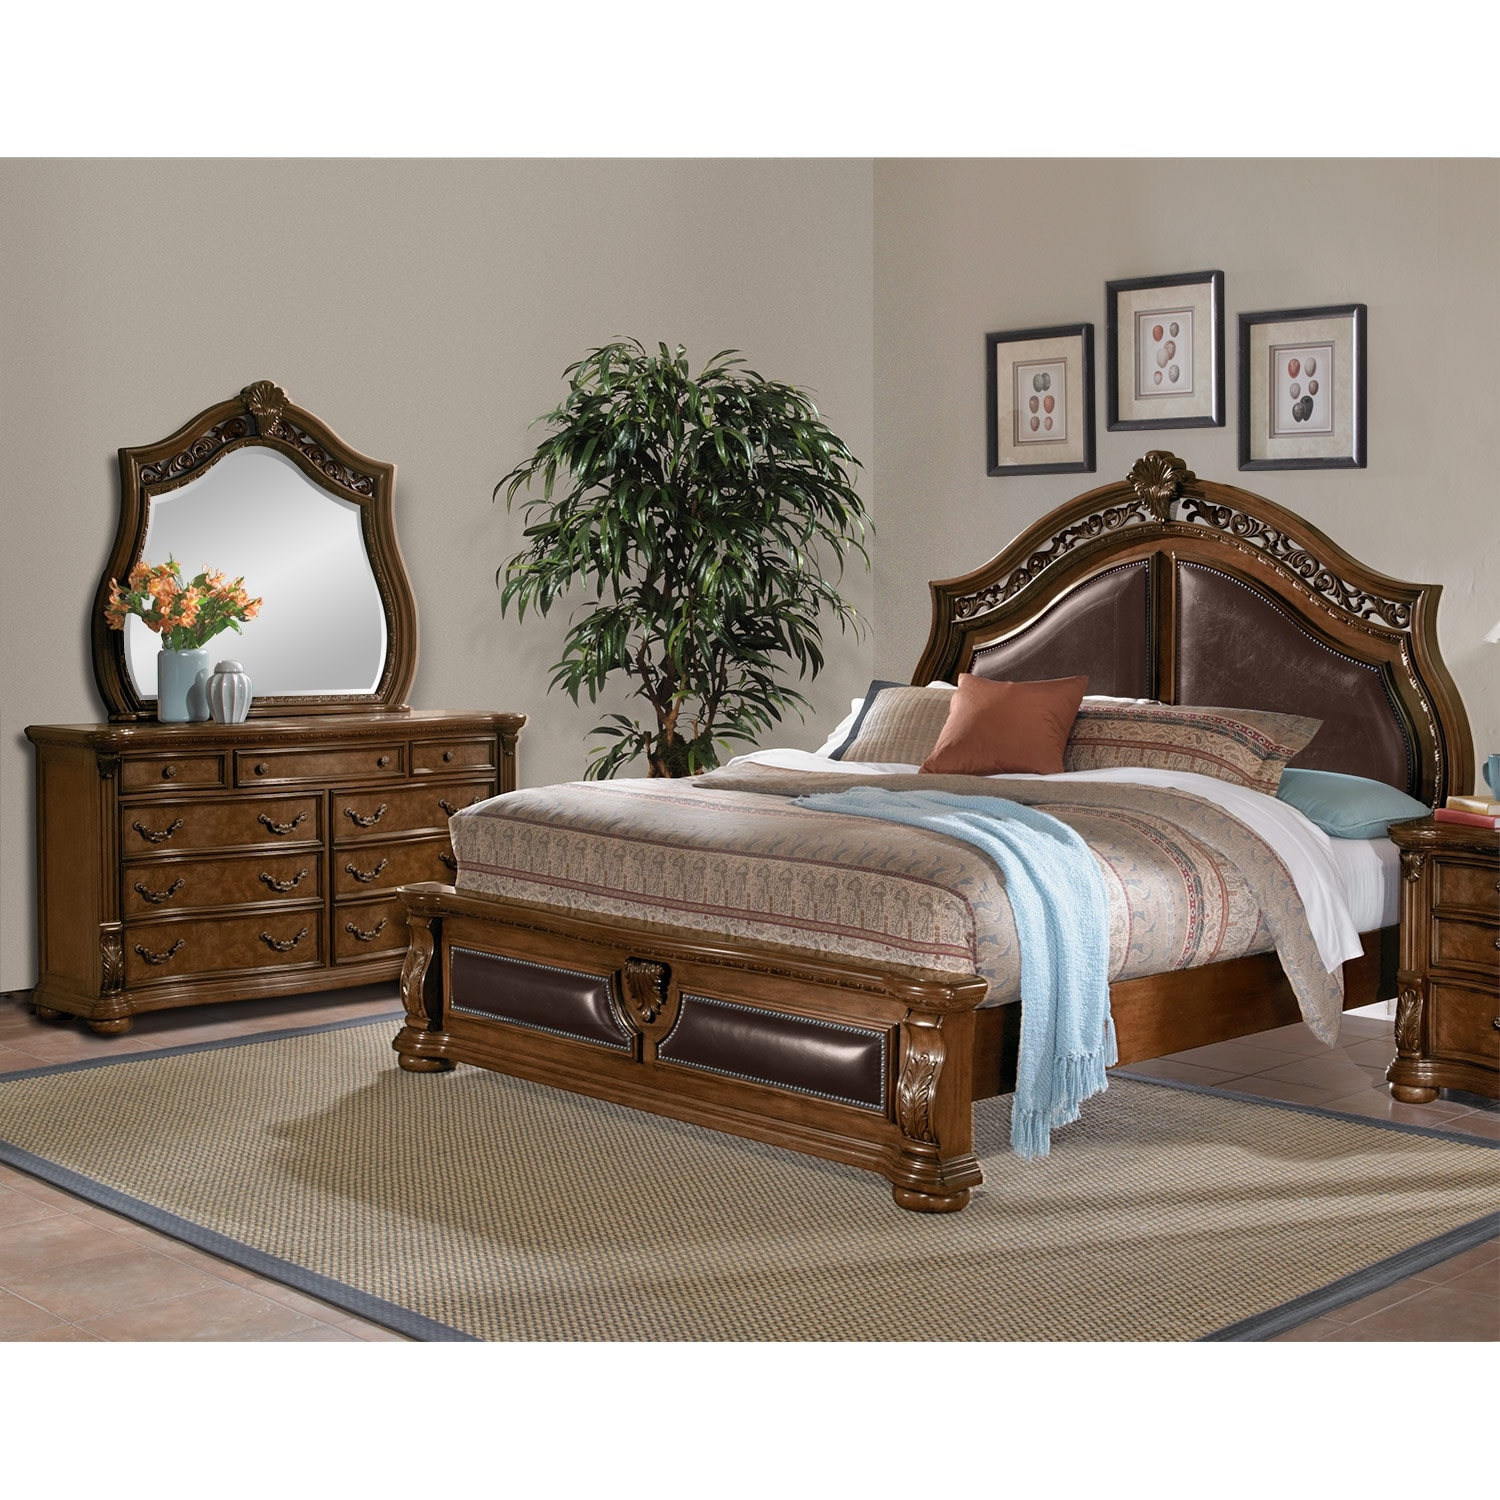 Bedroom Furniture - Morocco 5-Piece King Bedroom Set - Pecan